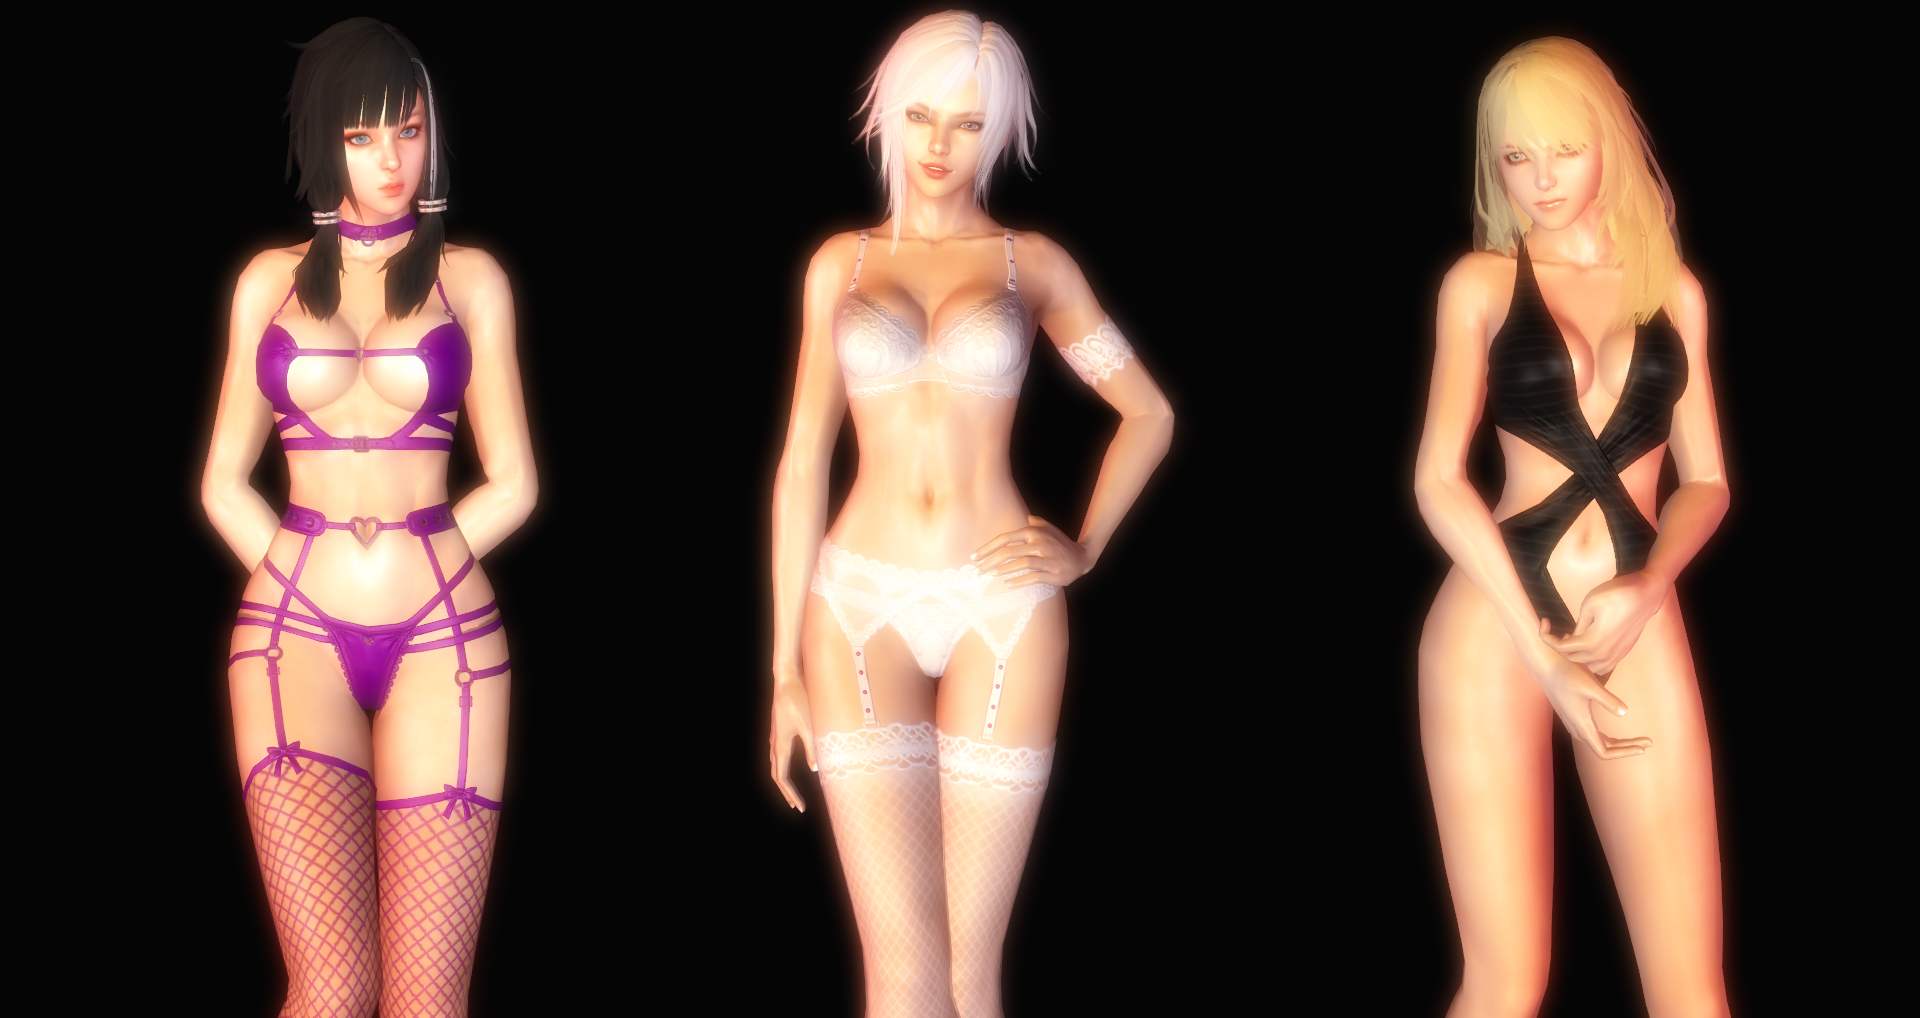 Vindictus nu mod sex movie